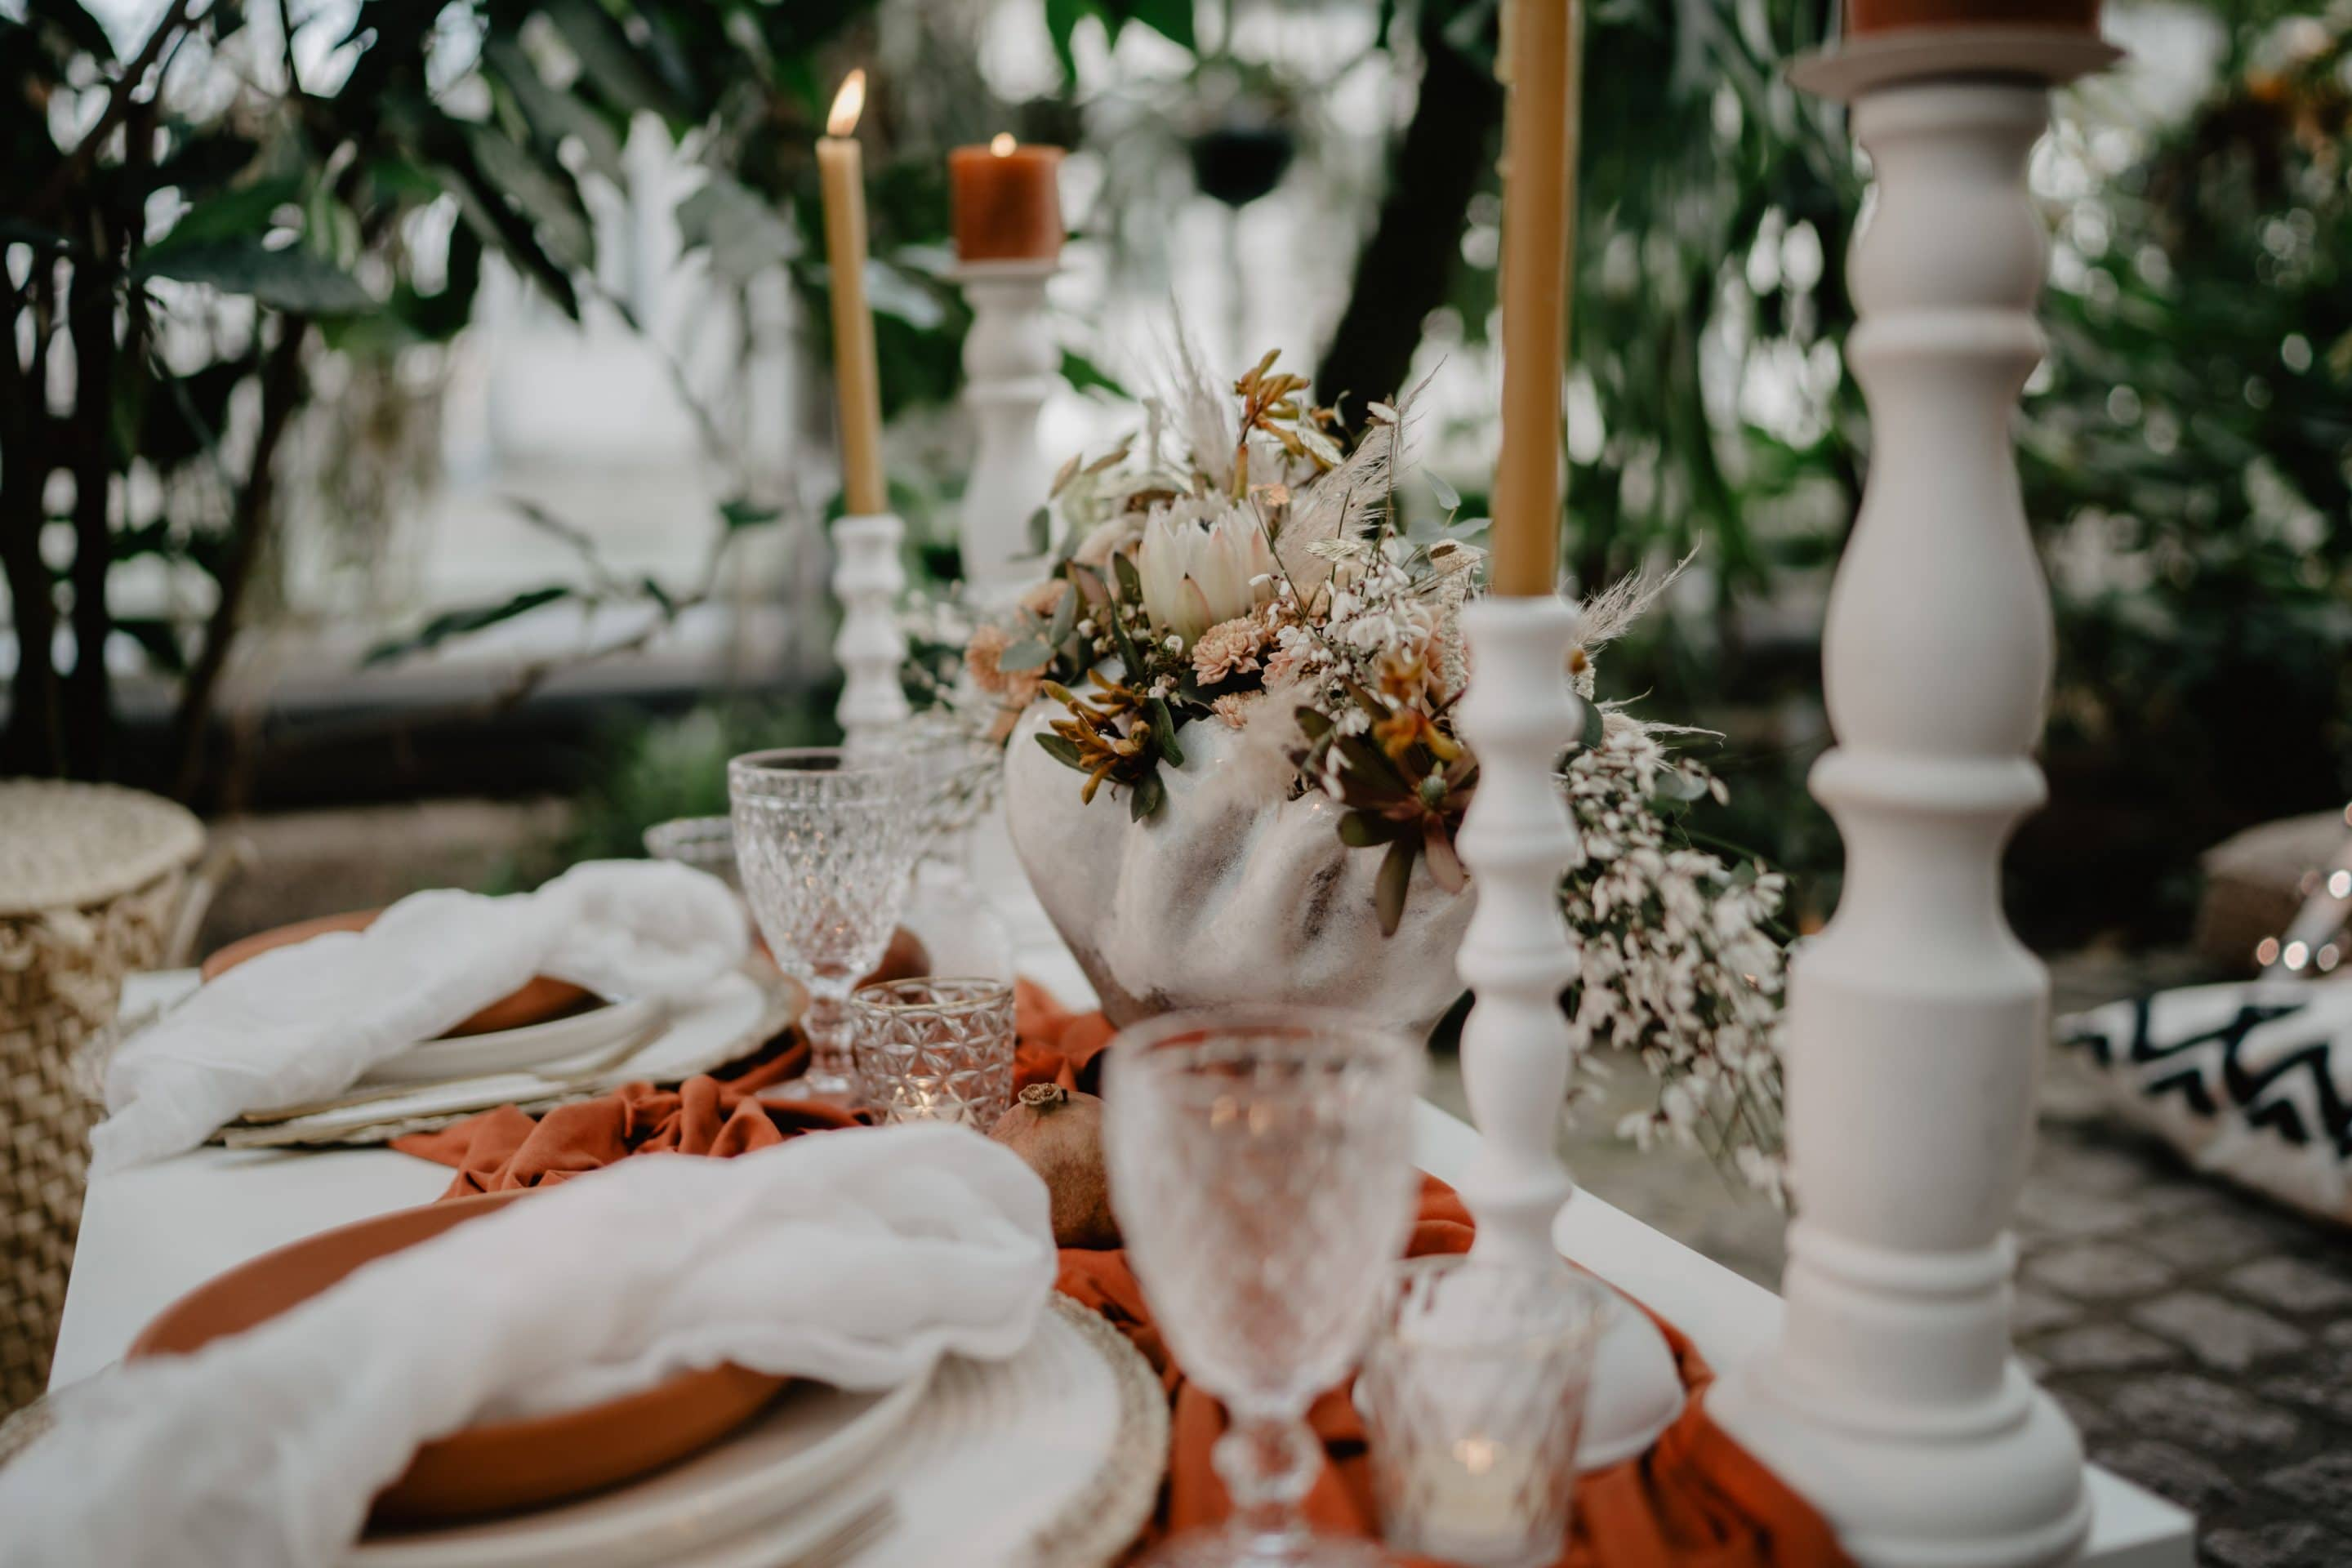 styled shoot, Styled Shoot